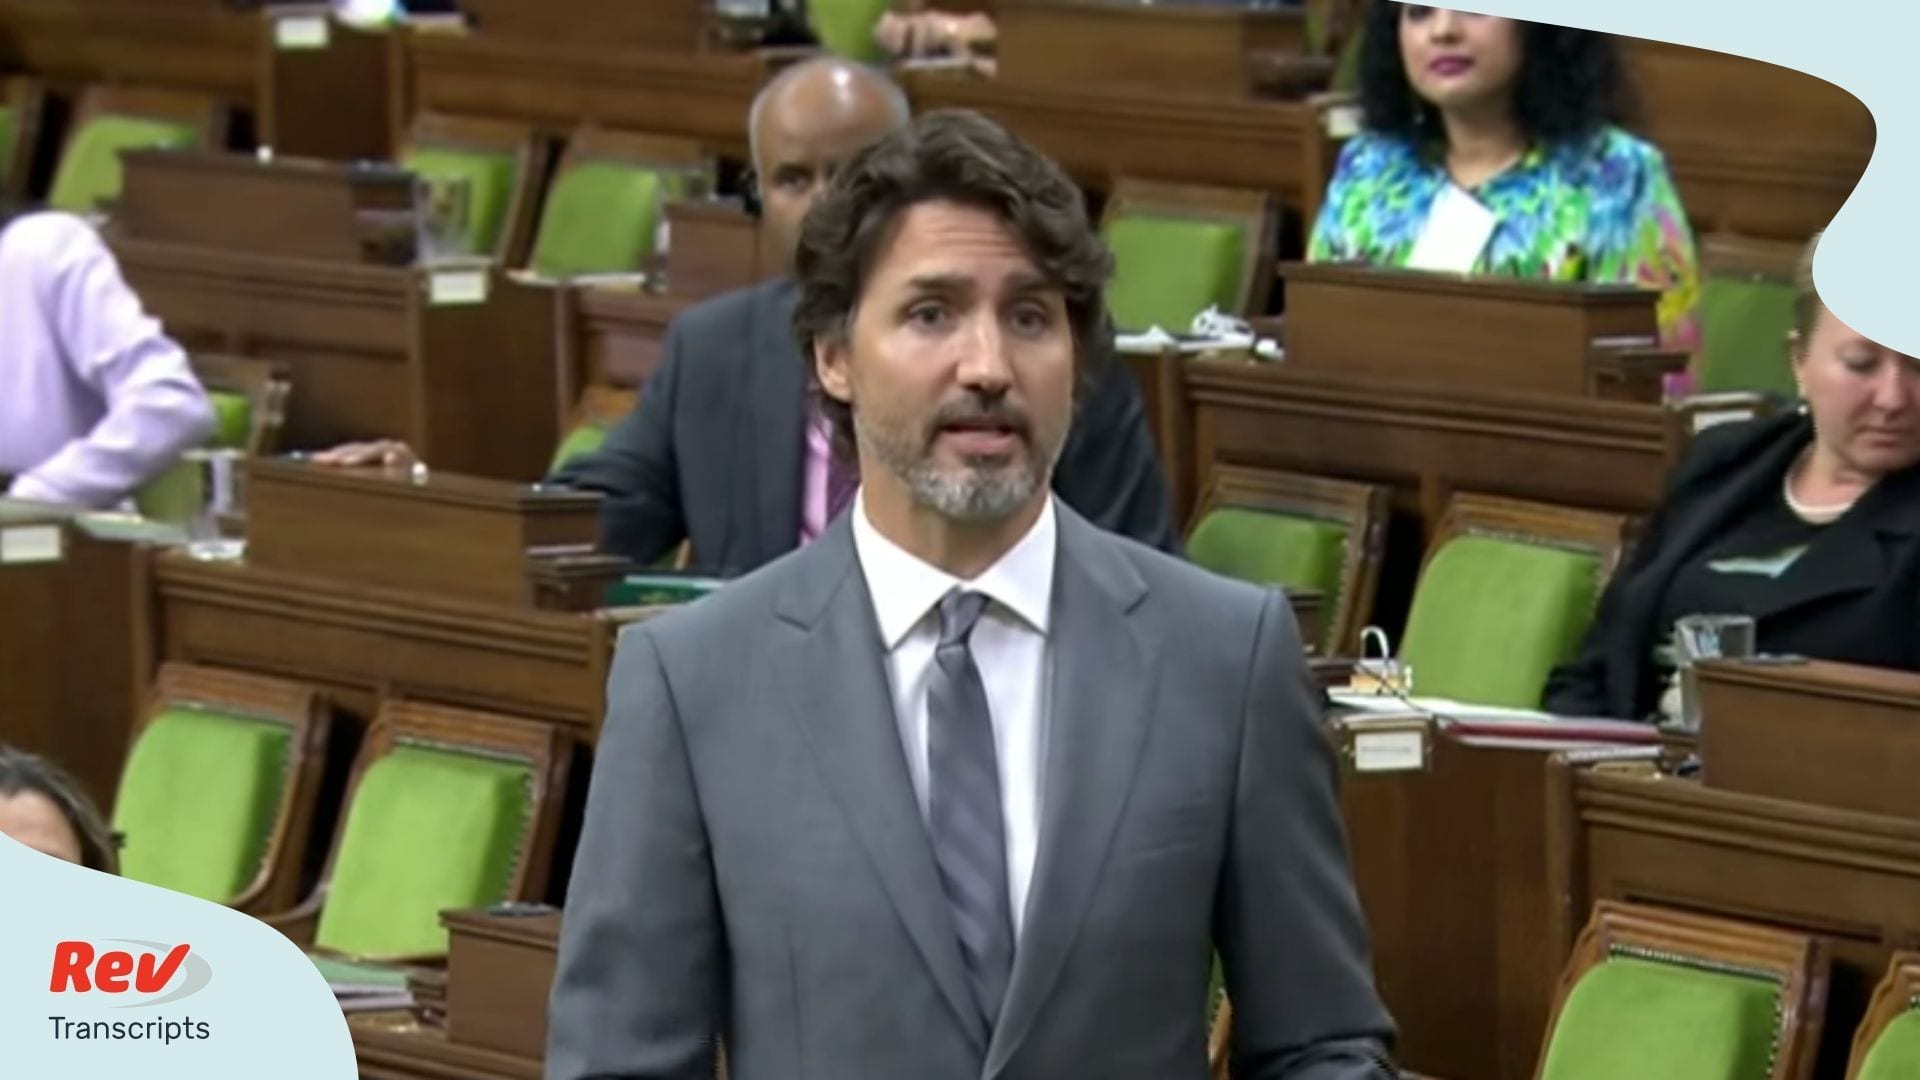 Trudeau faces questions over WE Charity controversy in Parliament